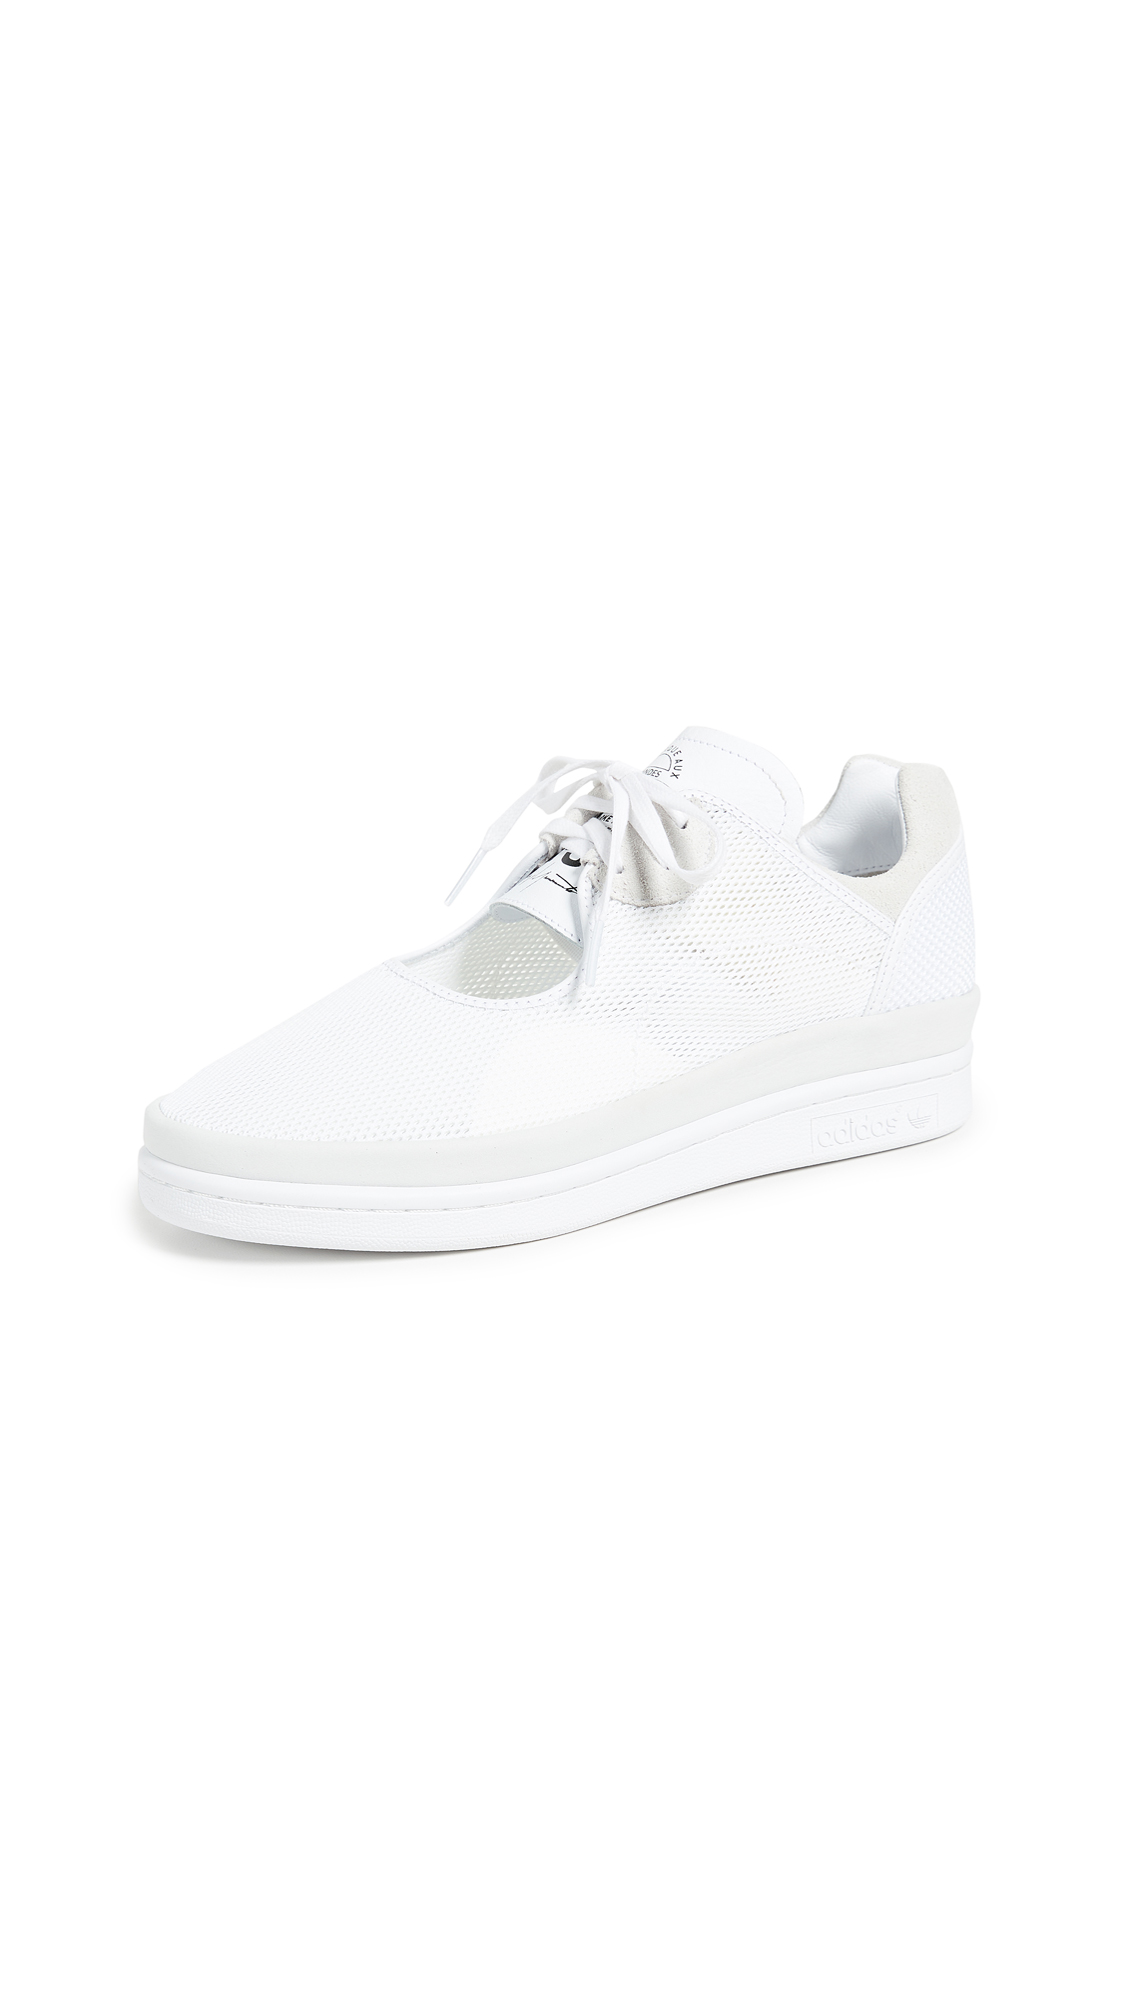 Y-3 Wedge Stan Sneakers In White/Core Black/White